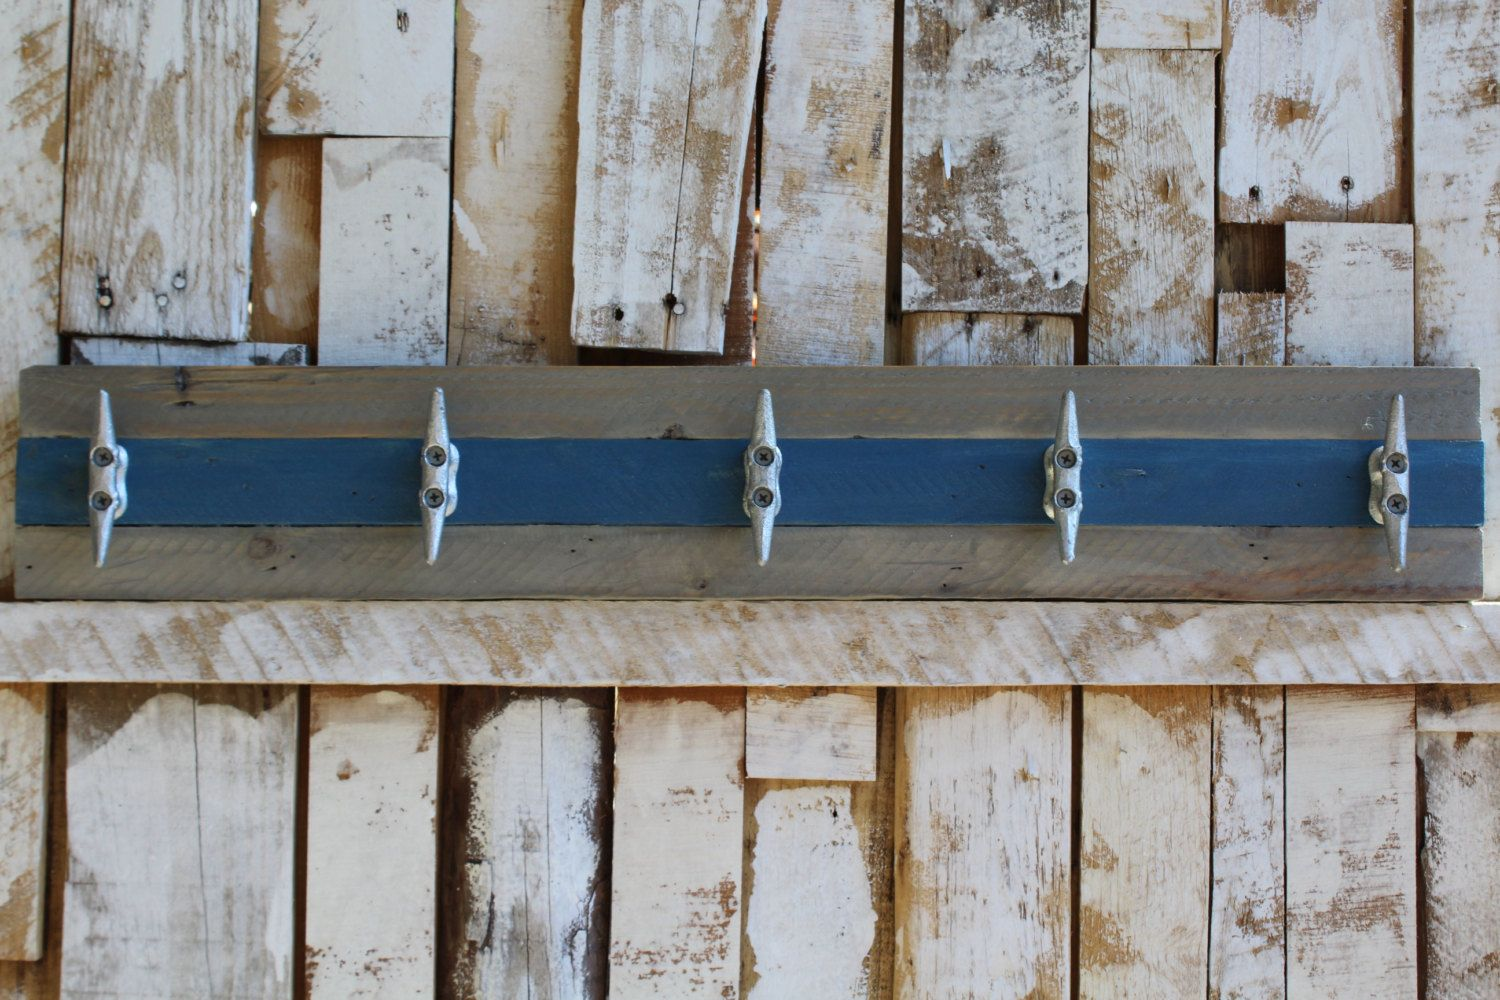 30 boat cleat dock cleat coat rack towel rack coastal on inventive ideas to utilize reclaimed wood pallet projects all you must to know id=19793